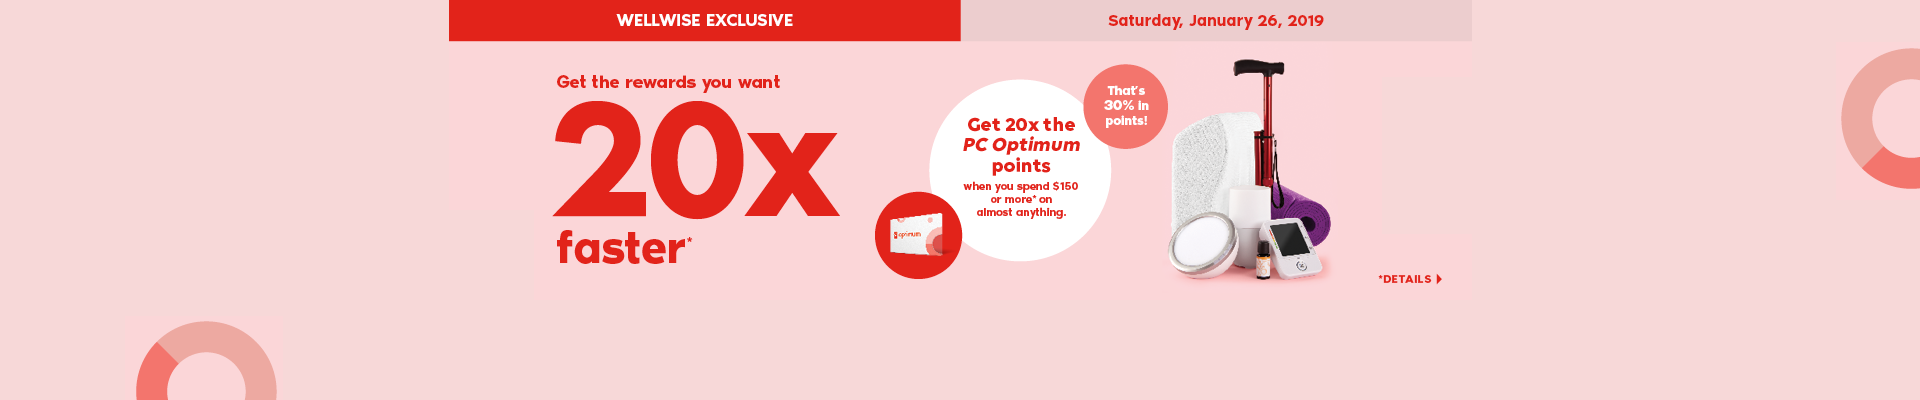 WELLWISE EXCLUSIVE. Saturday, January 26, 2019 Get the rewards you want 20x faster*. Get 20x the PC Optimum points when you spend $150 or more* on almost anything. That's 30% in points! *Details